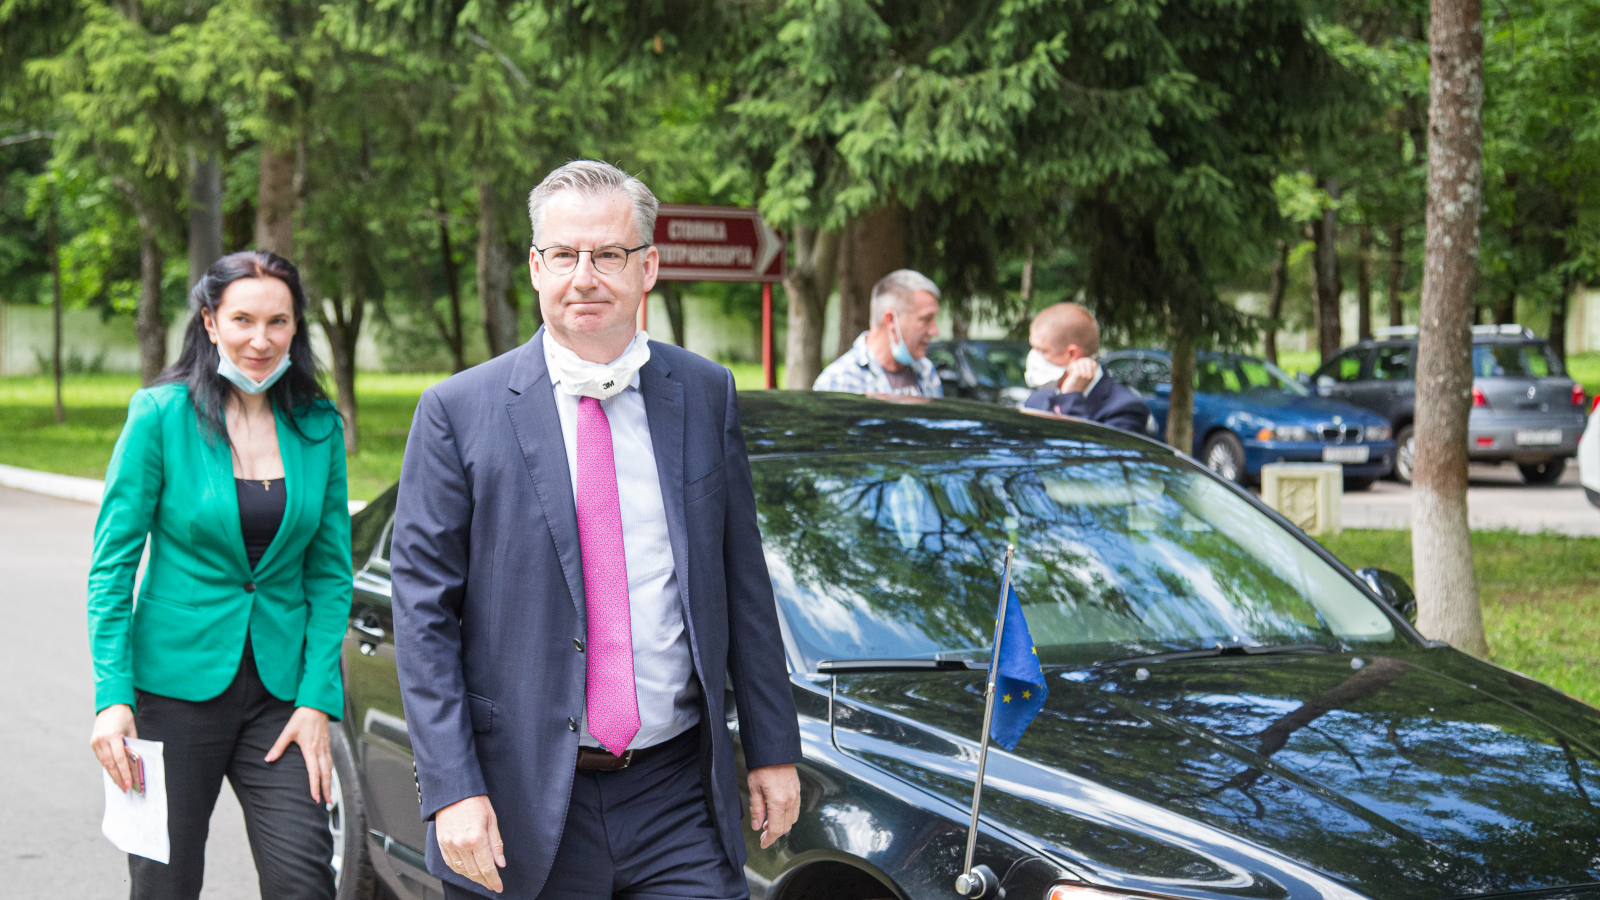 Head of the EU Delegation to Belarus Ambassador Dirk Schuebel